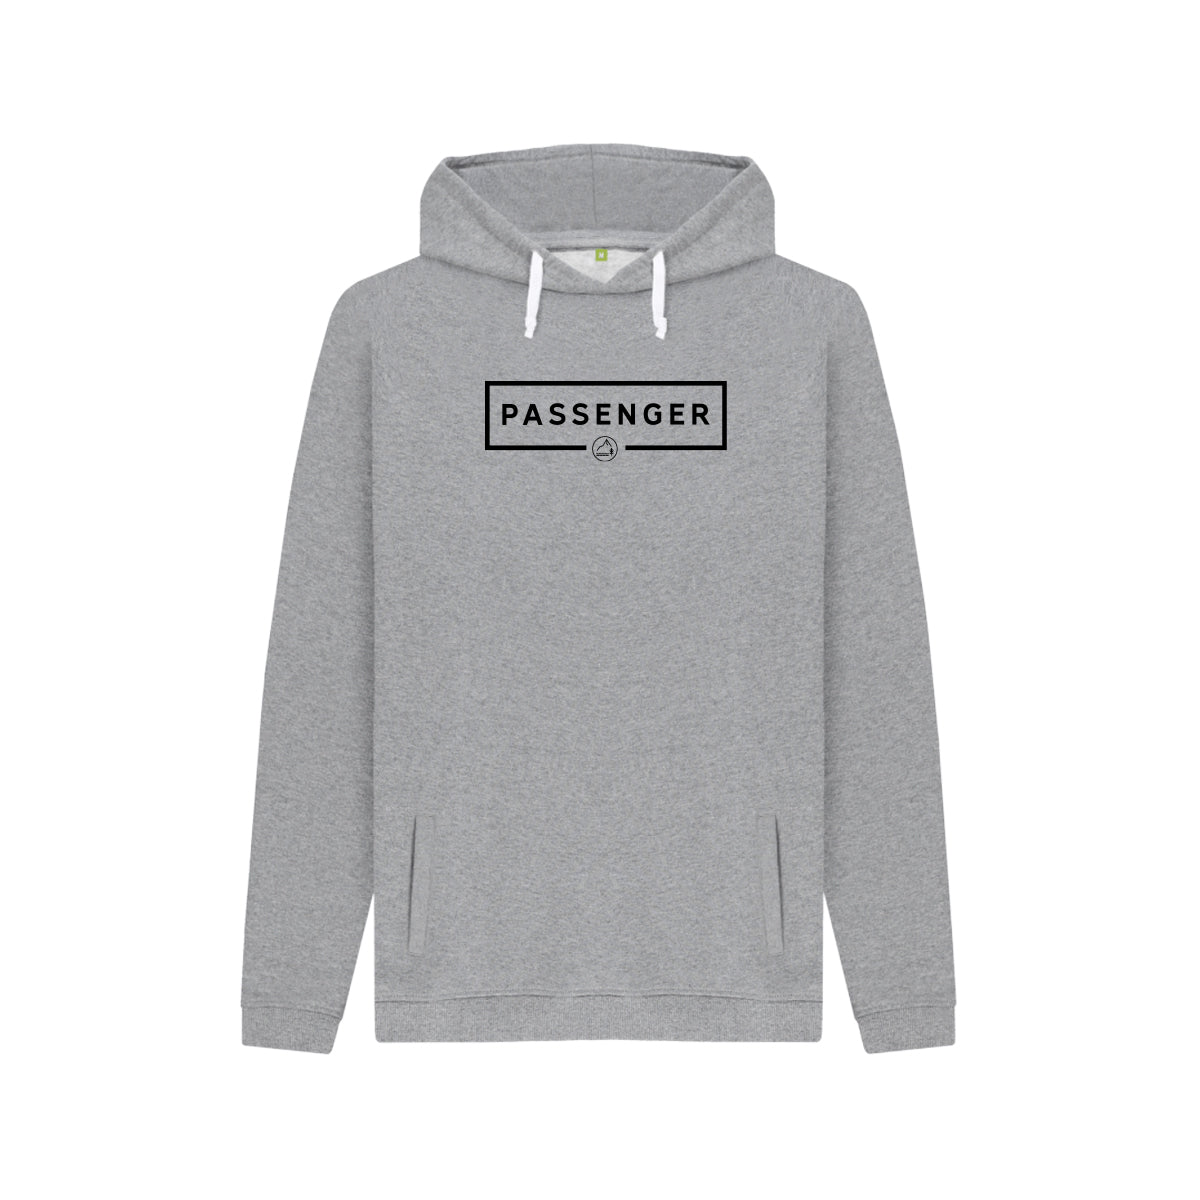 Campout Hoodie - Grey Marl image 3